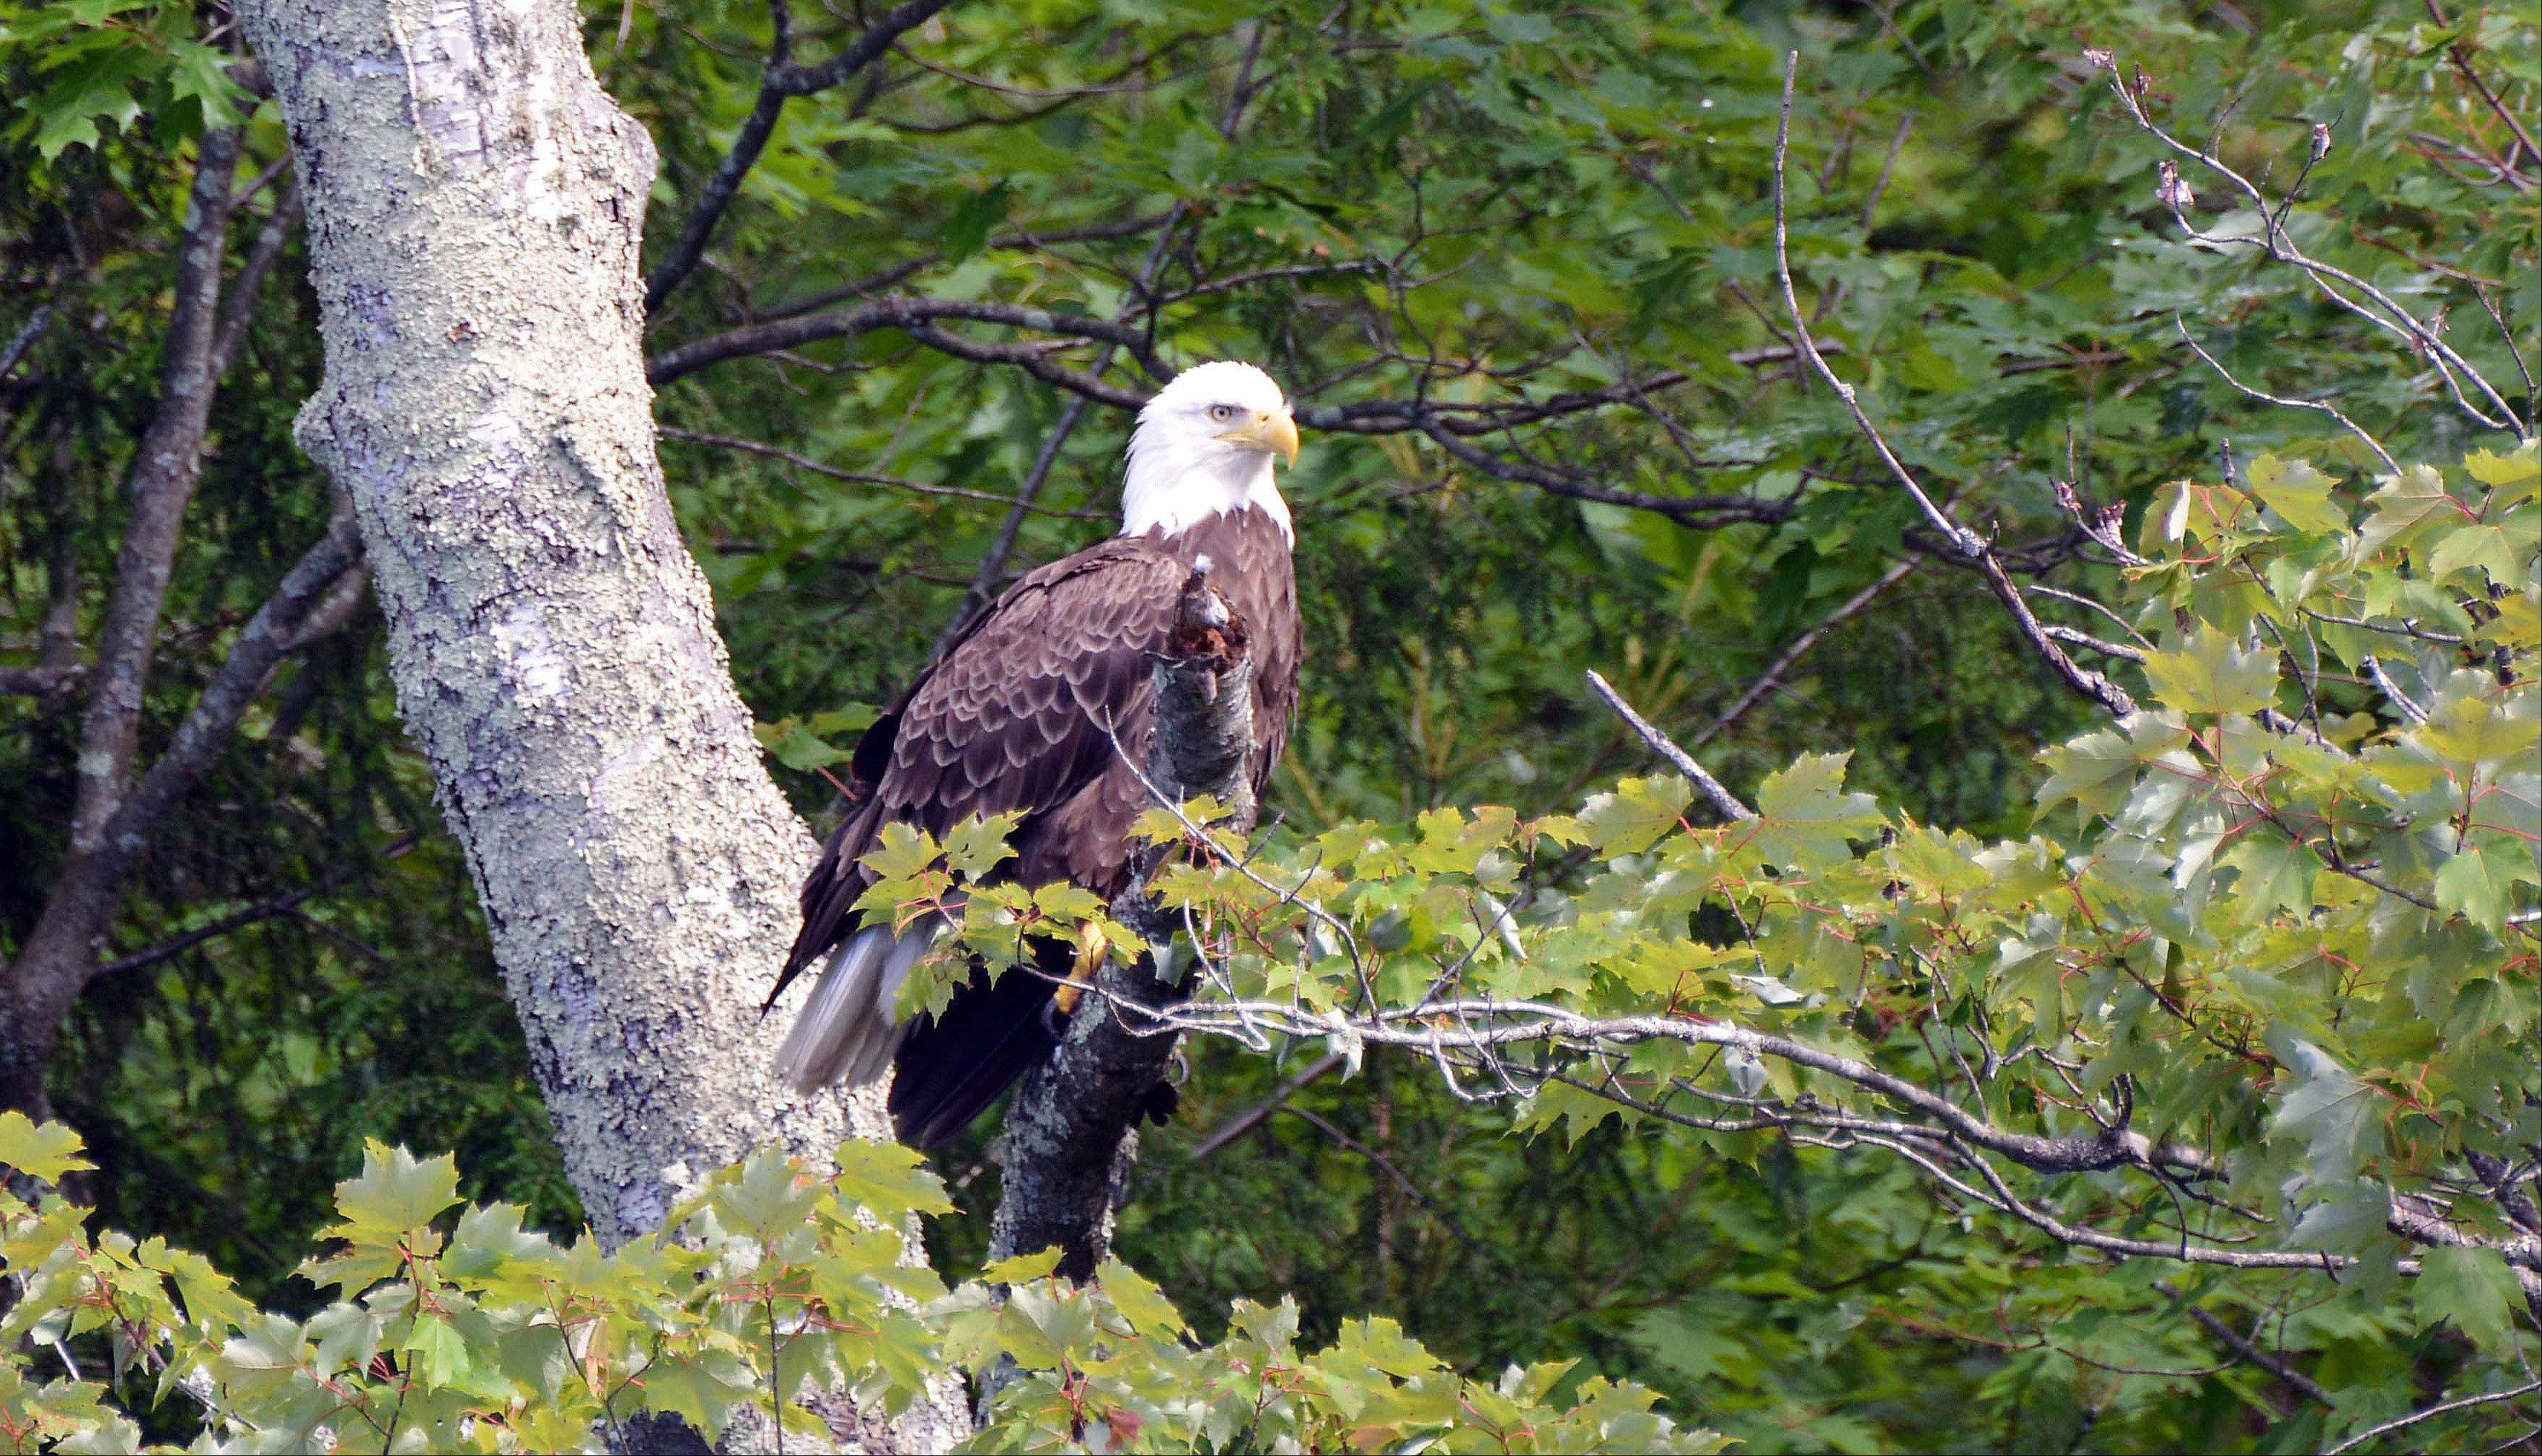 We were in Wisconsin on Blue Lake, just outside of Minocqua, for the Fourth of July week, and were amazed at the diversity and abundance of wildlife in the North Woods including this Bald Eagle perched in a tree. I never thought that I would be able to see a Bald Eagle in the wild, let alone capture its image so clearly. All were taken with my new Nikon D7100 which I had just received a couple of weeks earlier and was waiting for the right opportunity to test it out for the first time. I Couldn't have picked a better location to test out the camera.